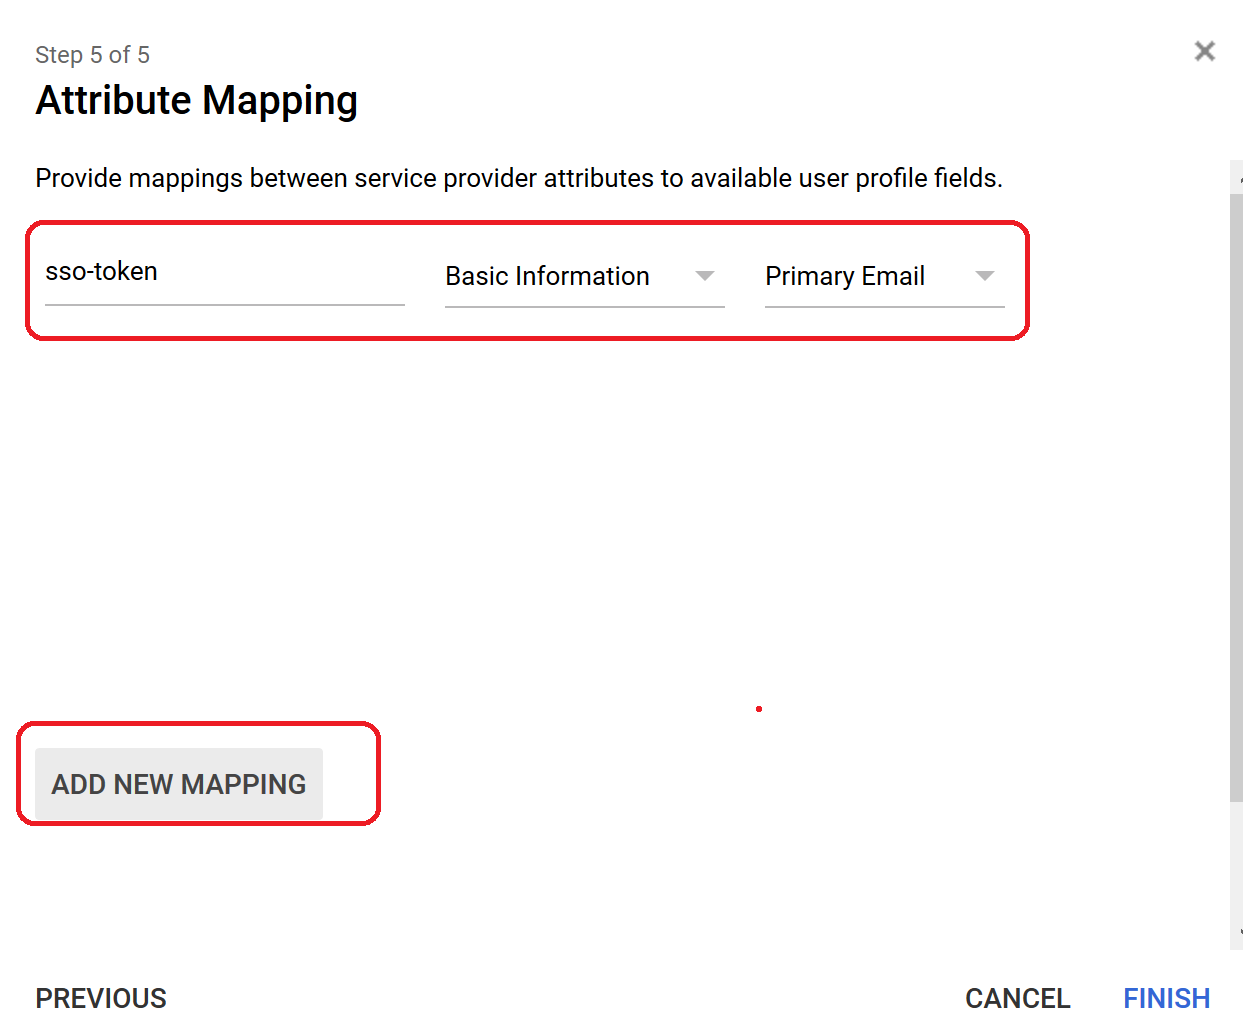 Attribute mapping, Add new mapping highlighted